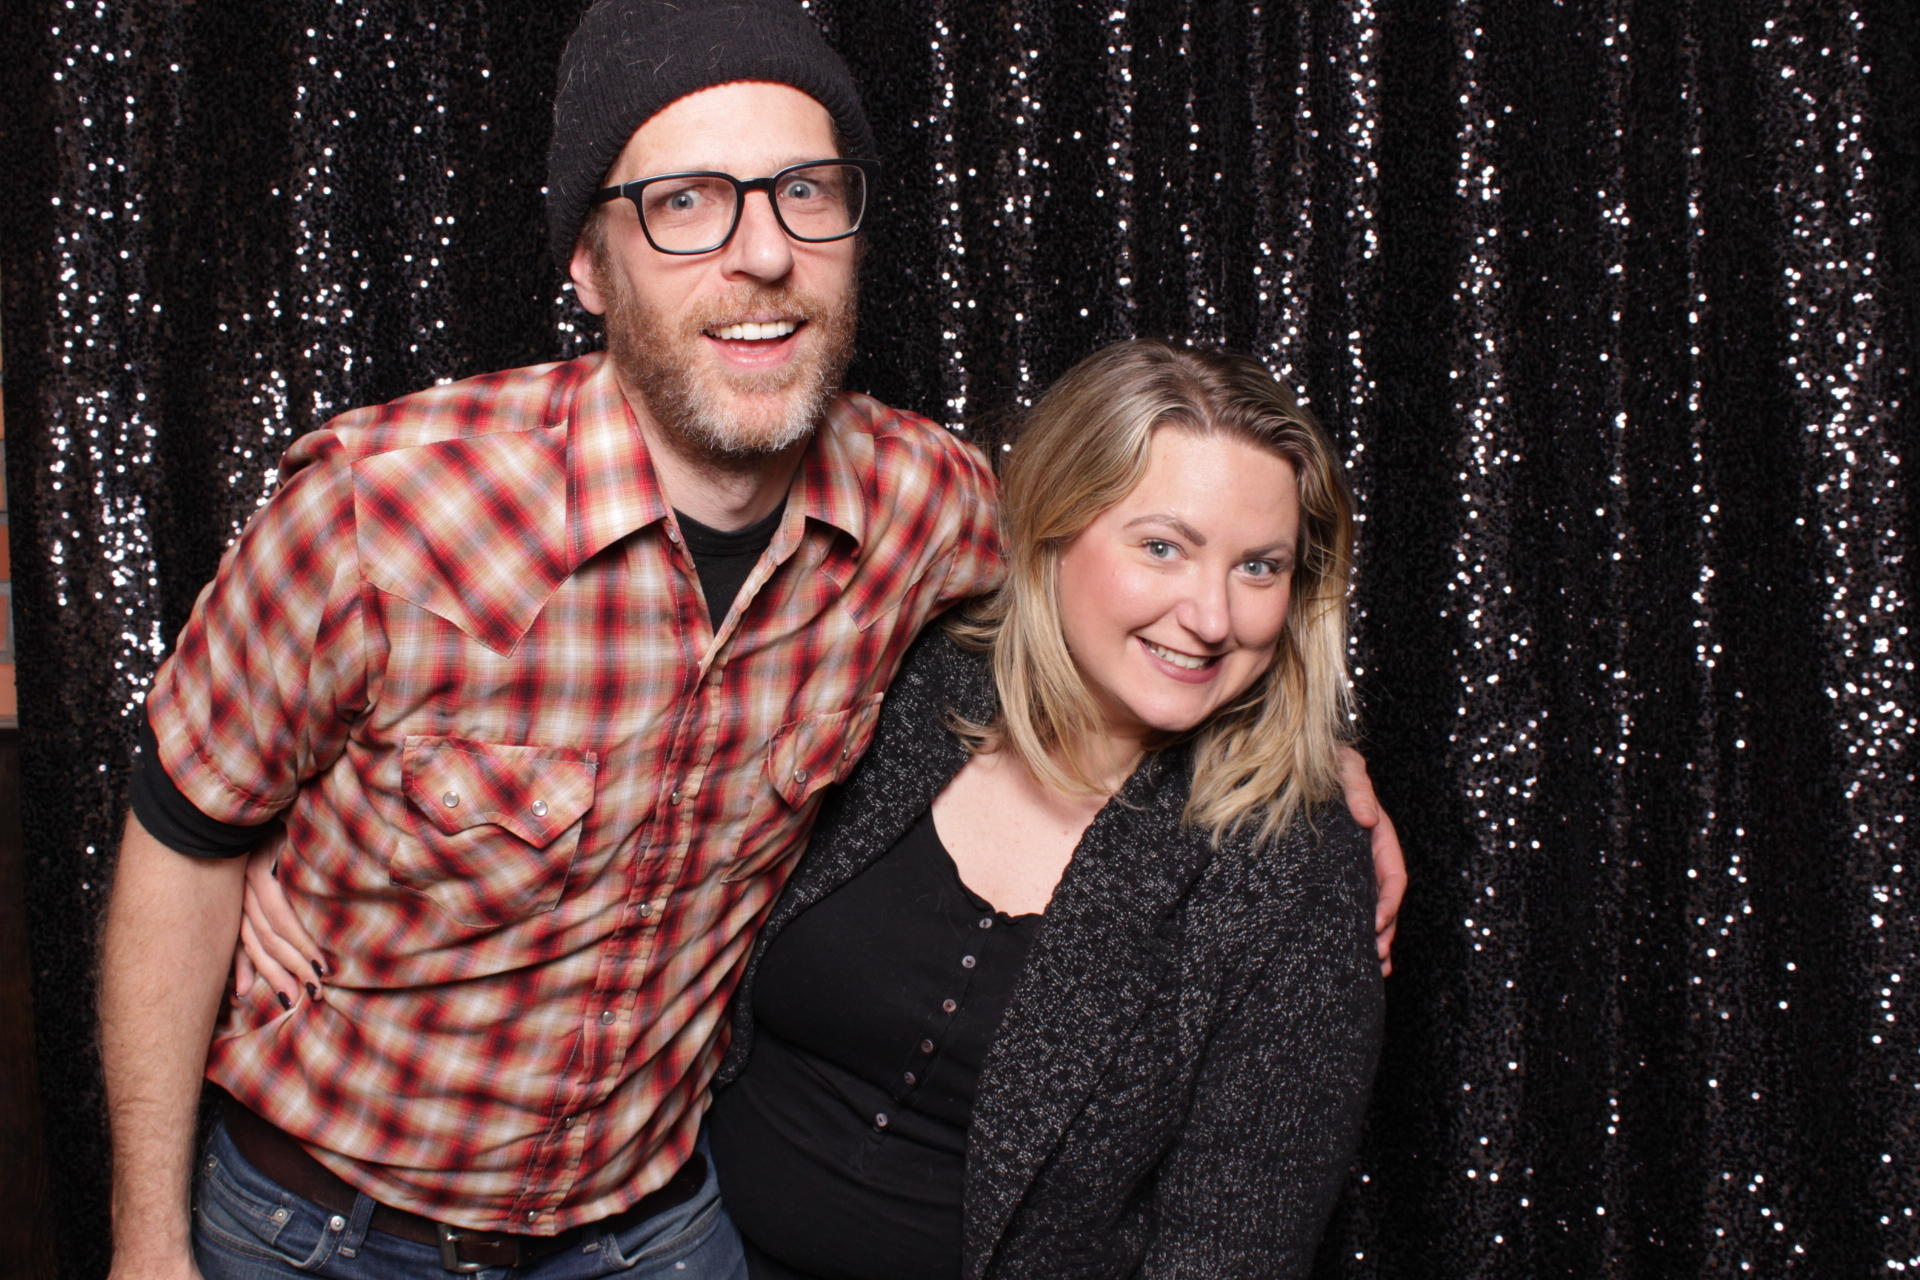 Minneapolis_birthday_party_photo_booth_rentals (16).jpg